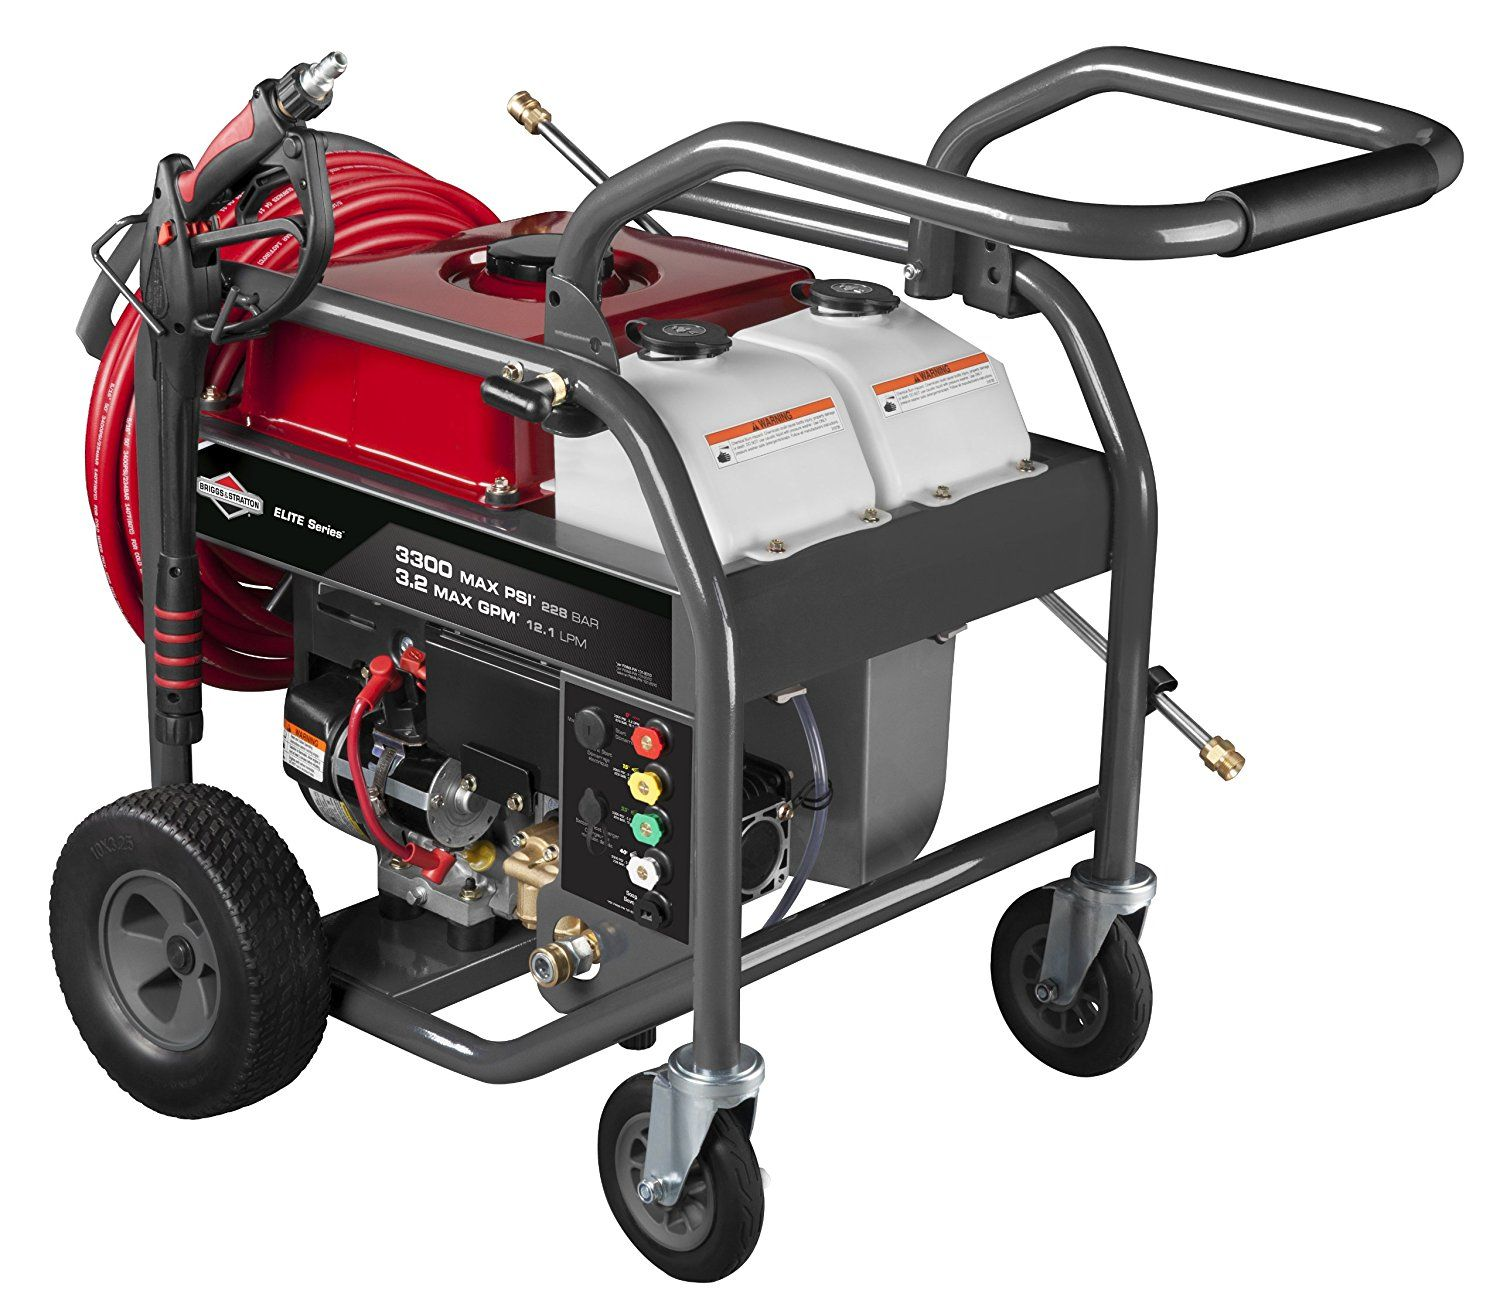 Best Briggs And Stratton Pressure Washer Reviews 2020